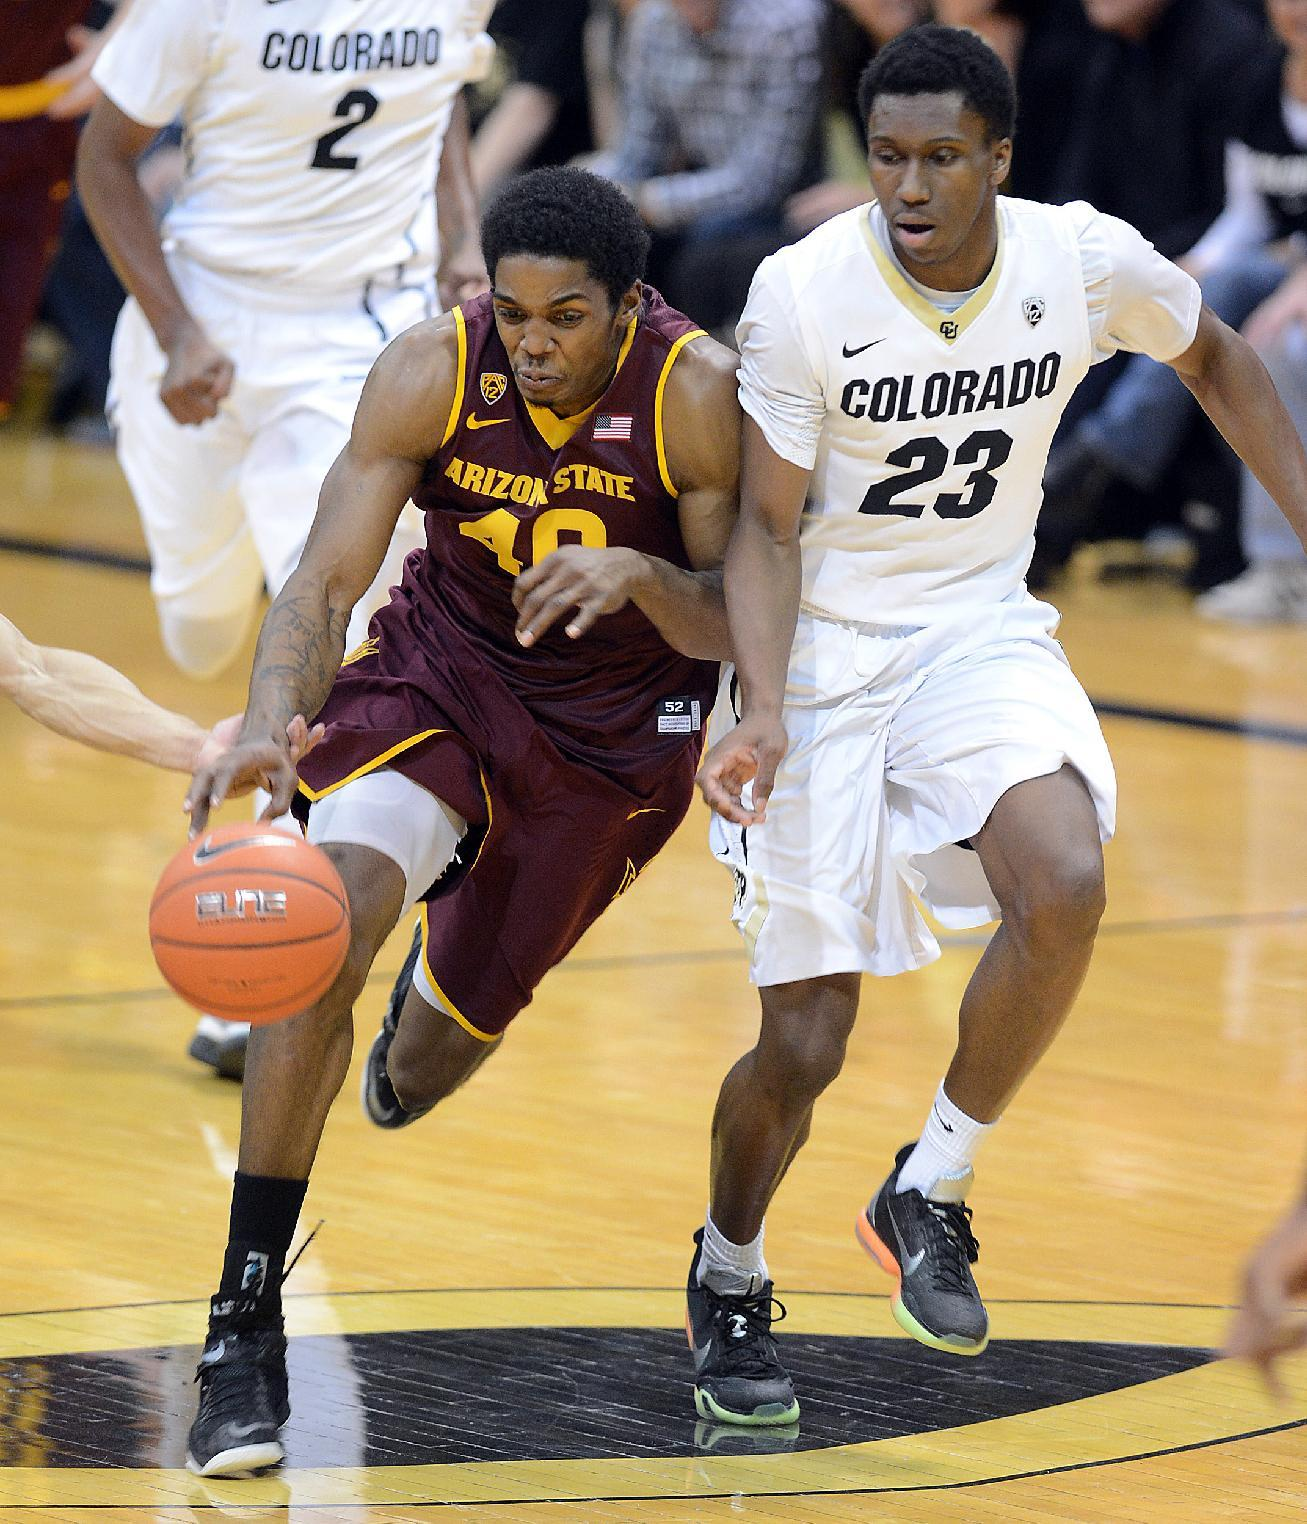 Colorado beats Arizona State 87-81 behind Booker's 29 points